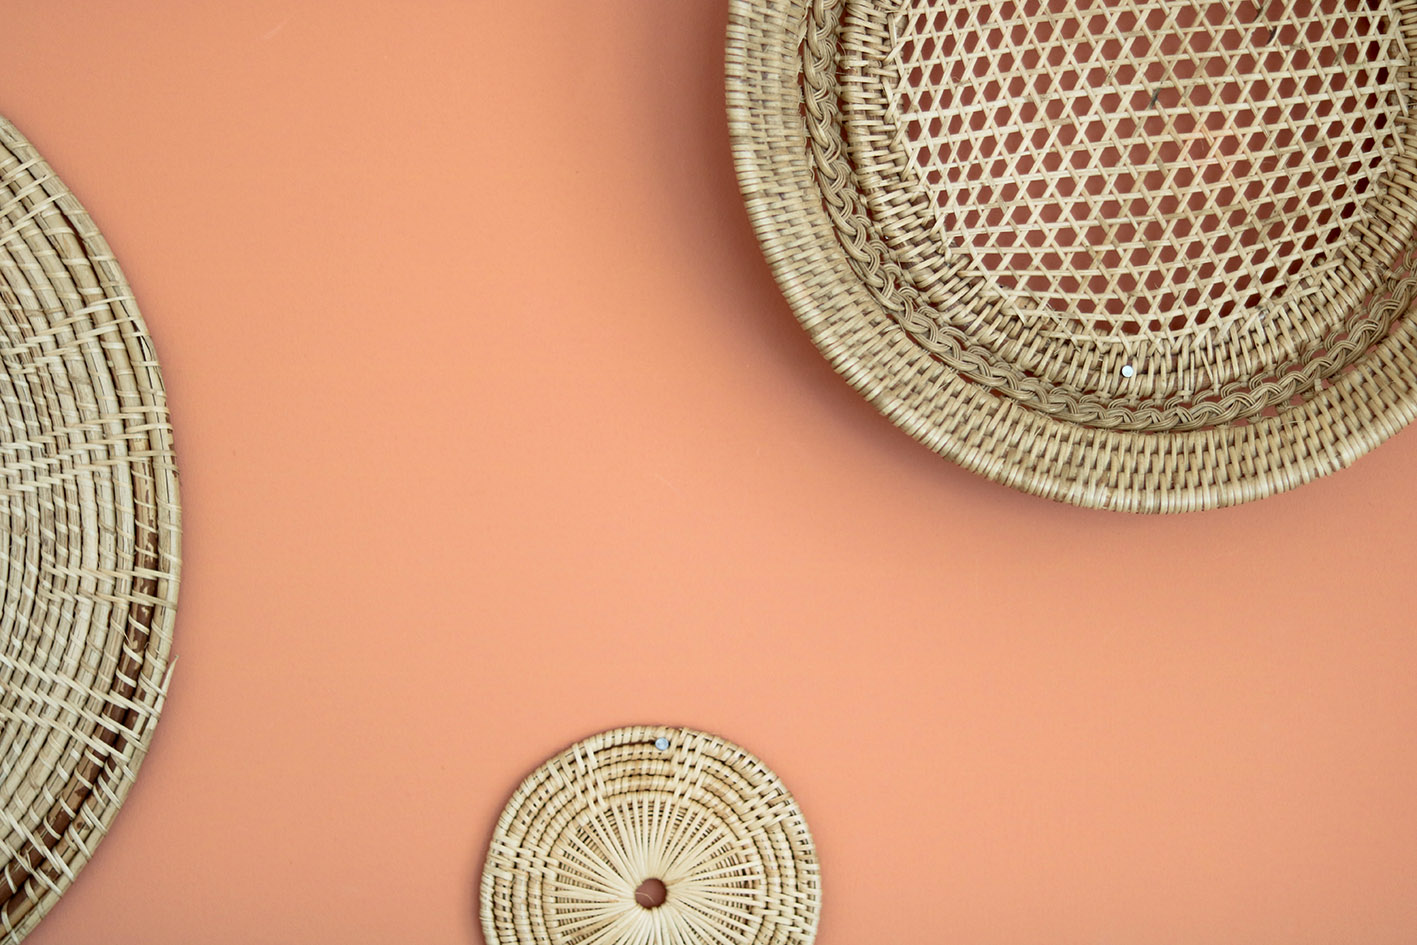 rattan-baskets-wall-terracotta